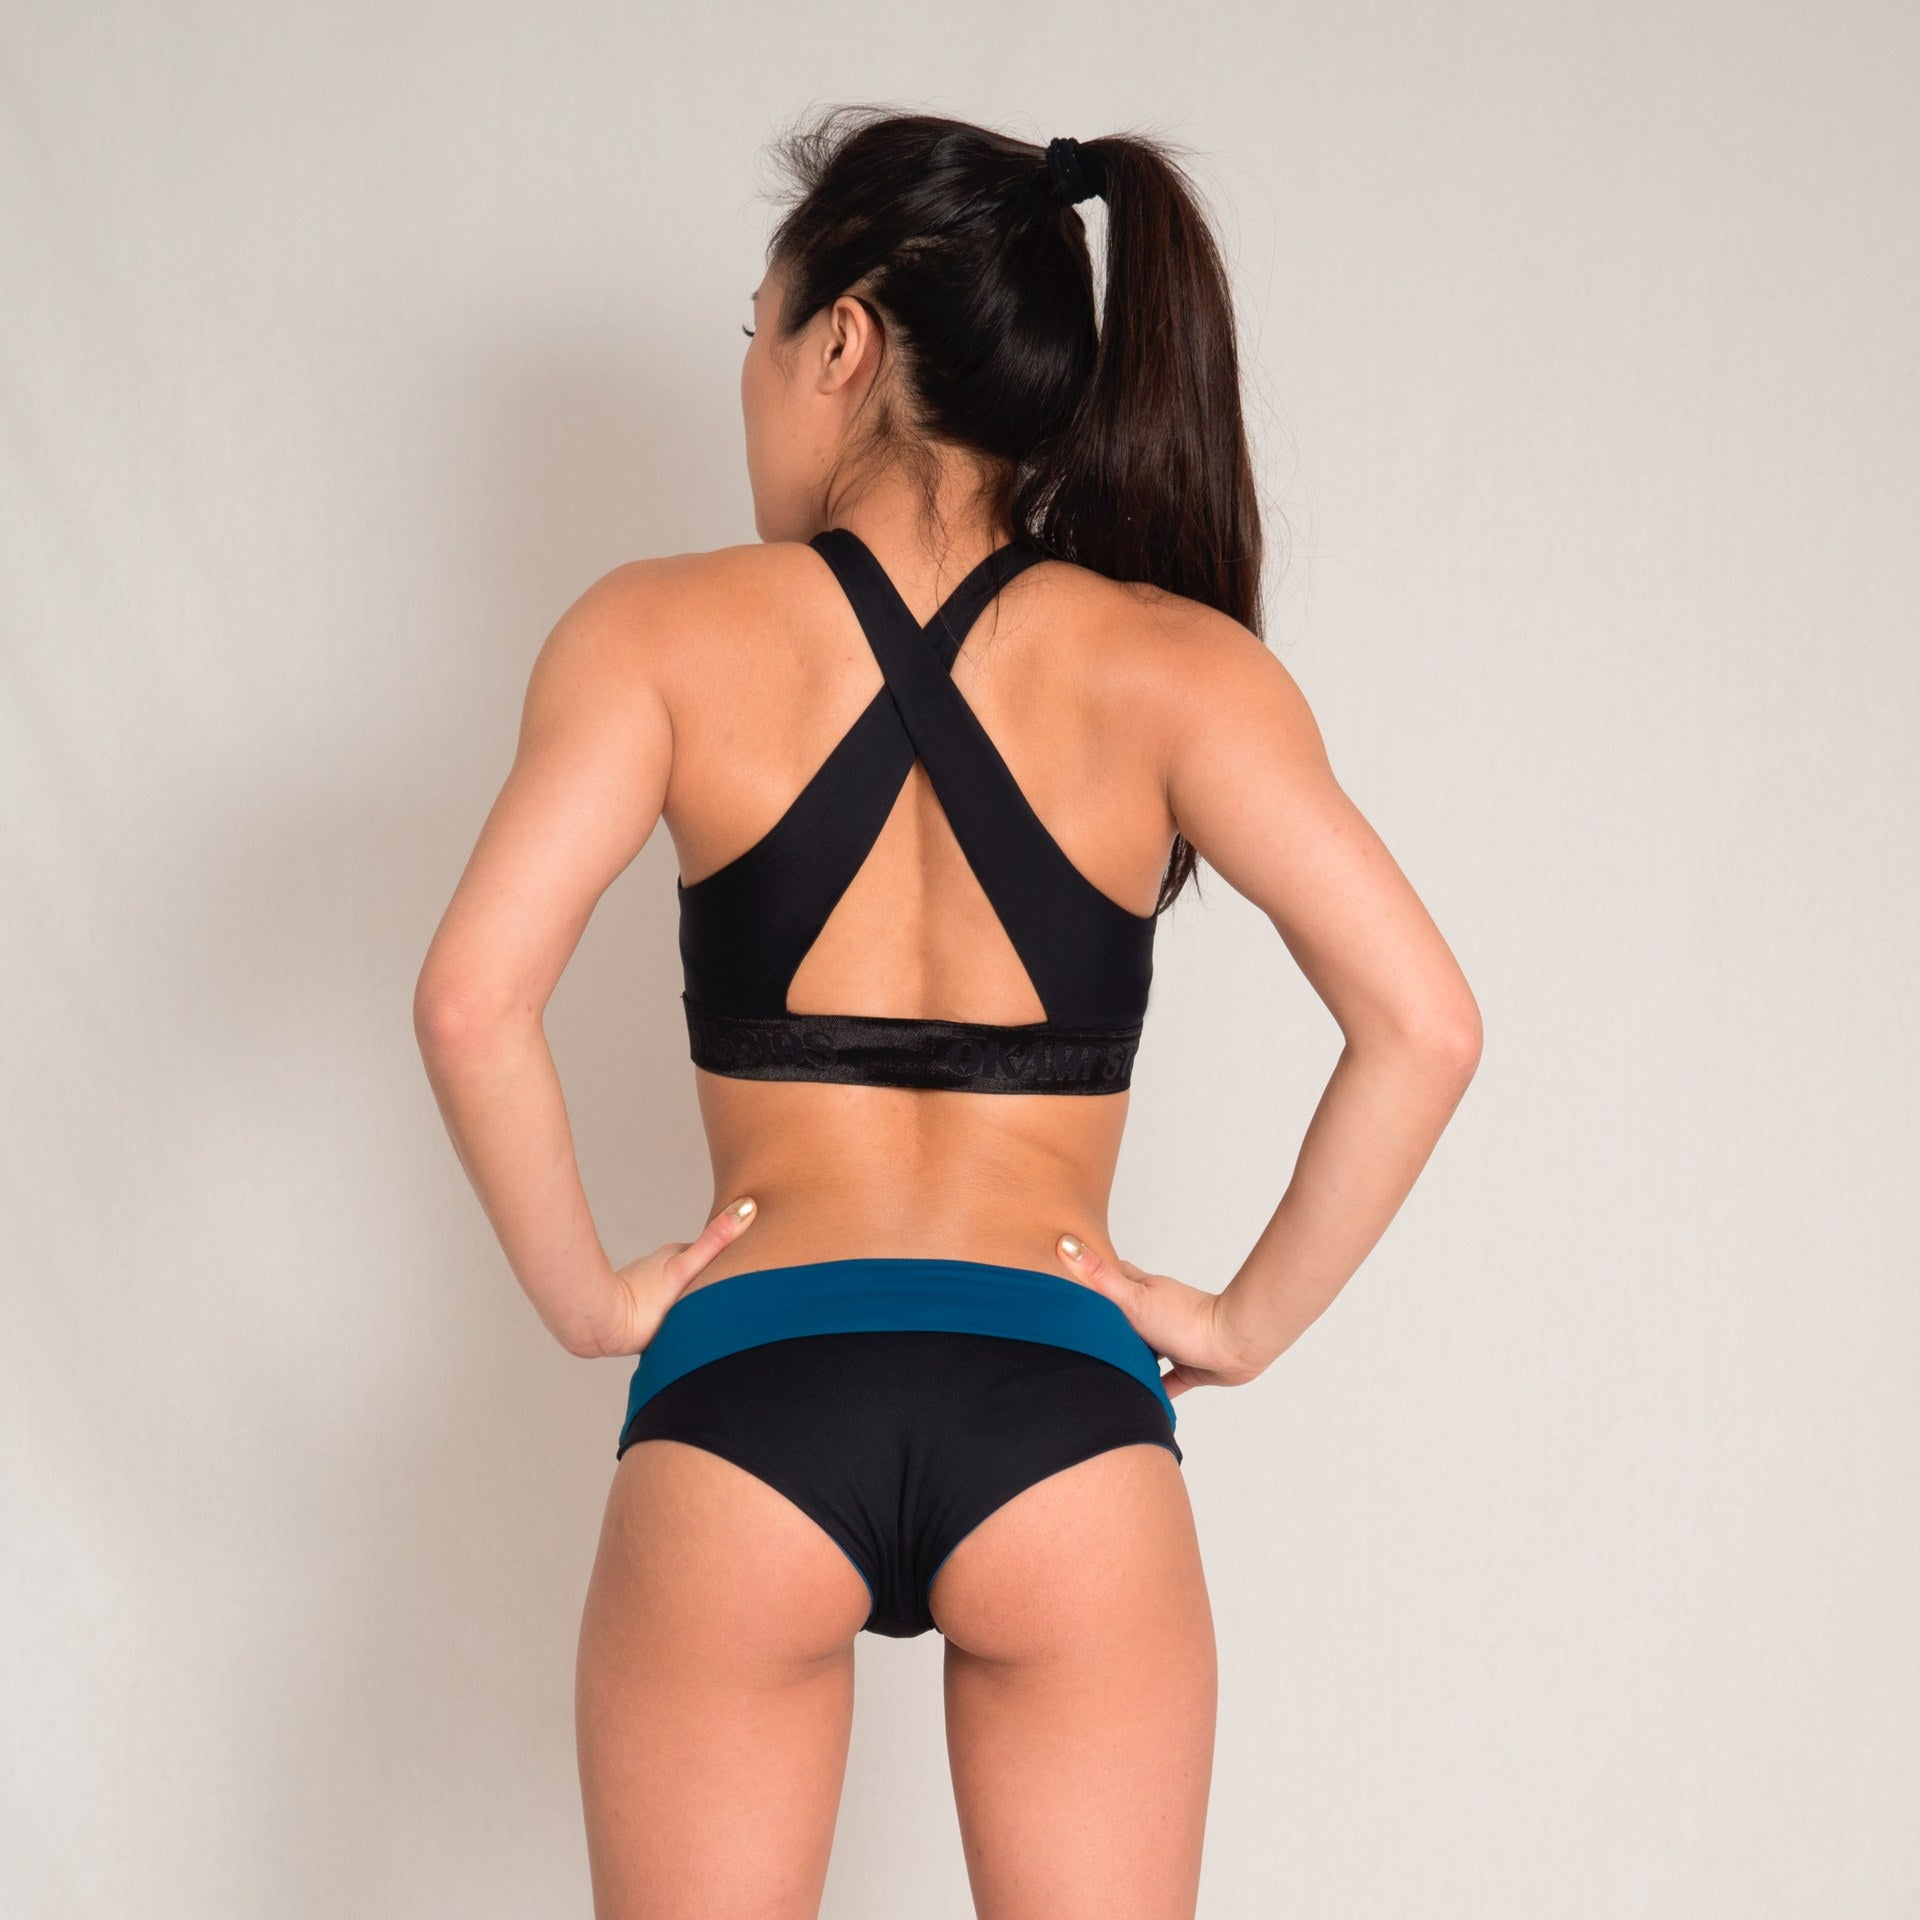 Low waist double-sided shorts fro aerial and pole dance